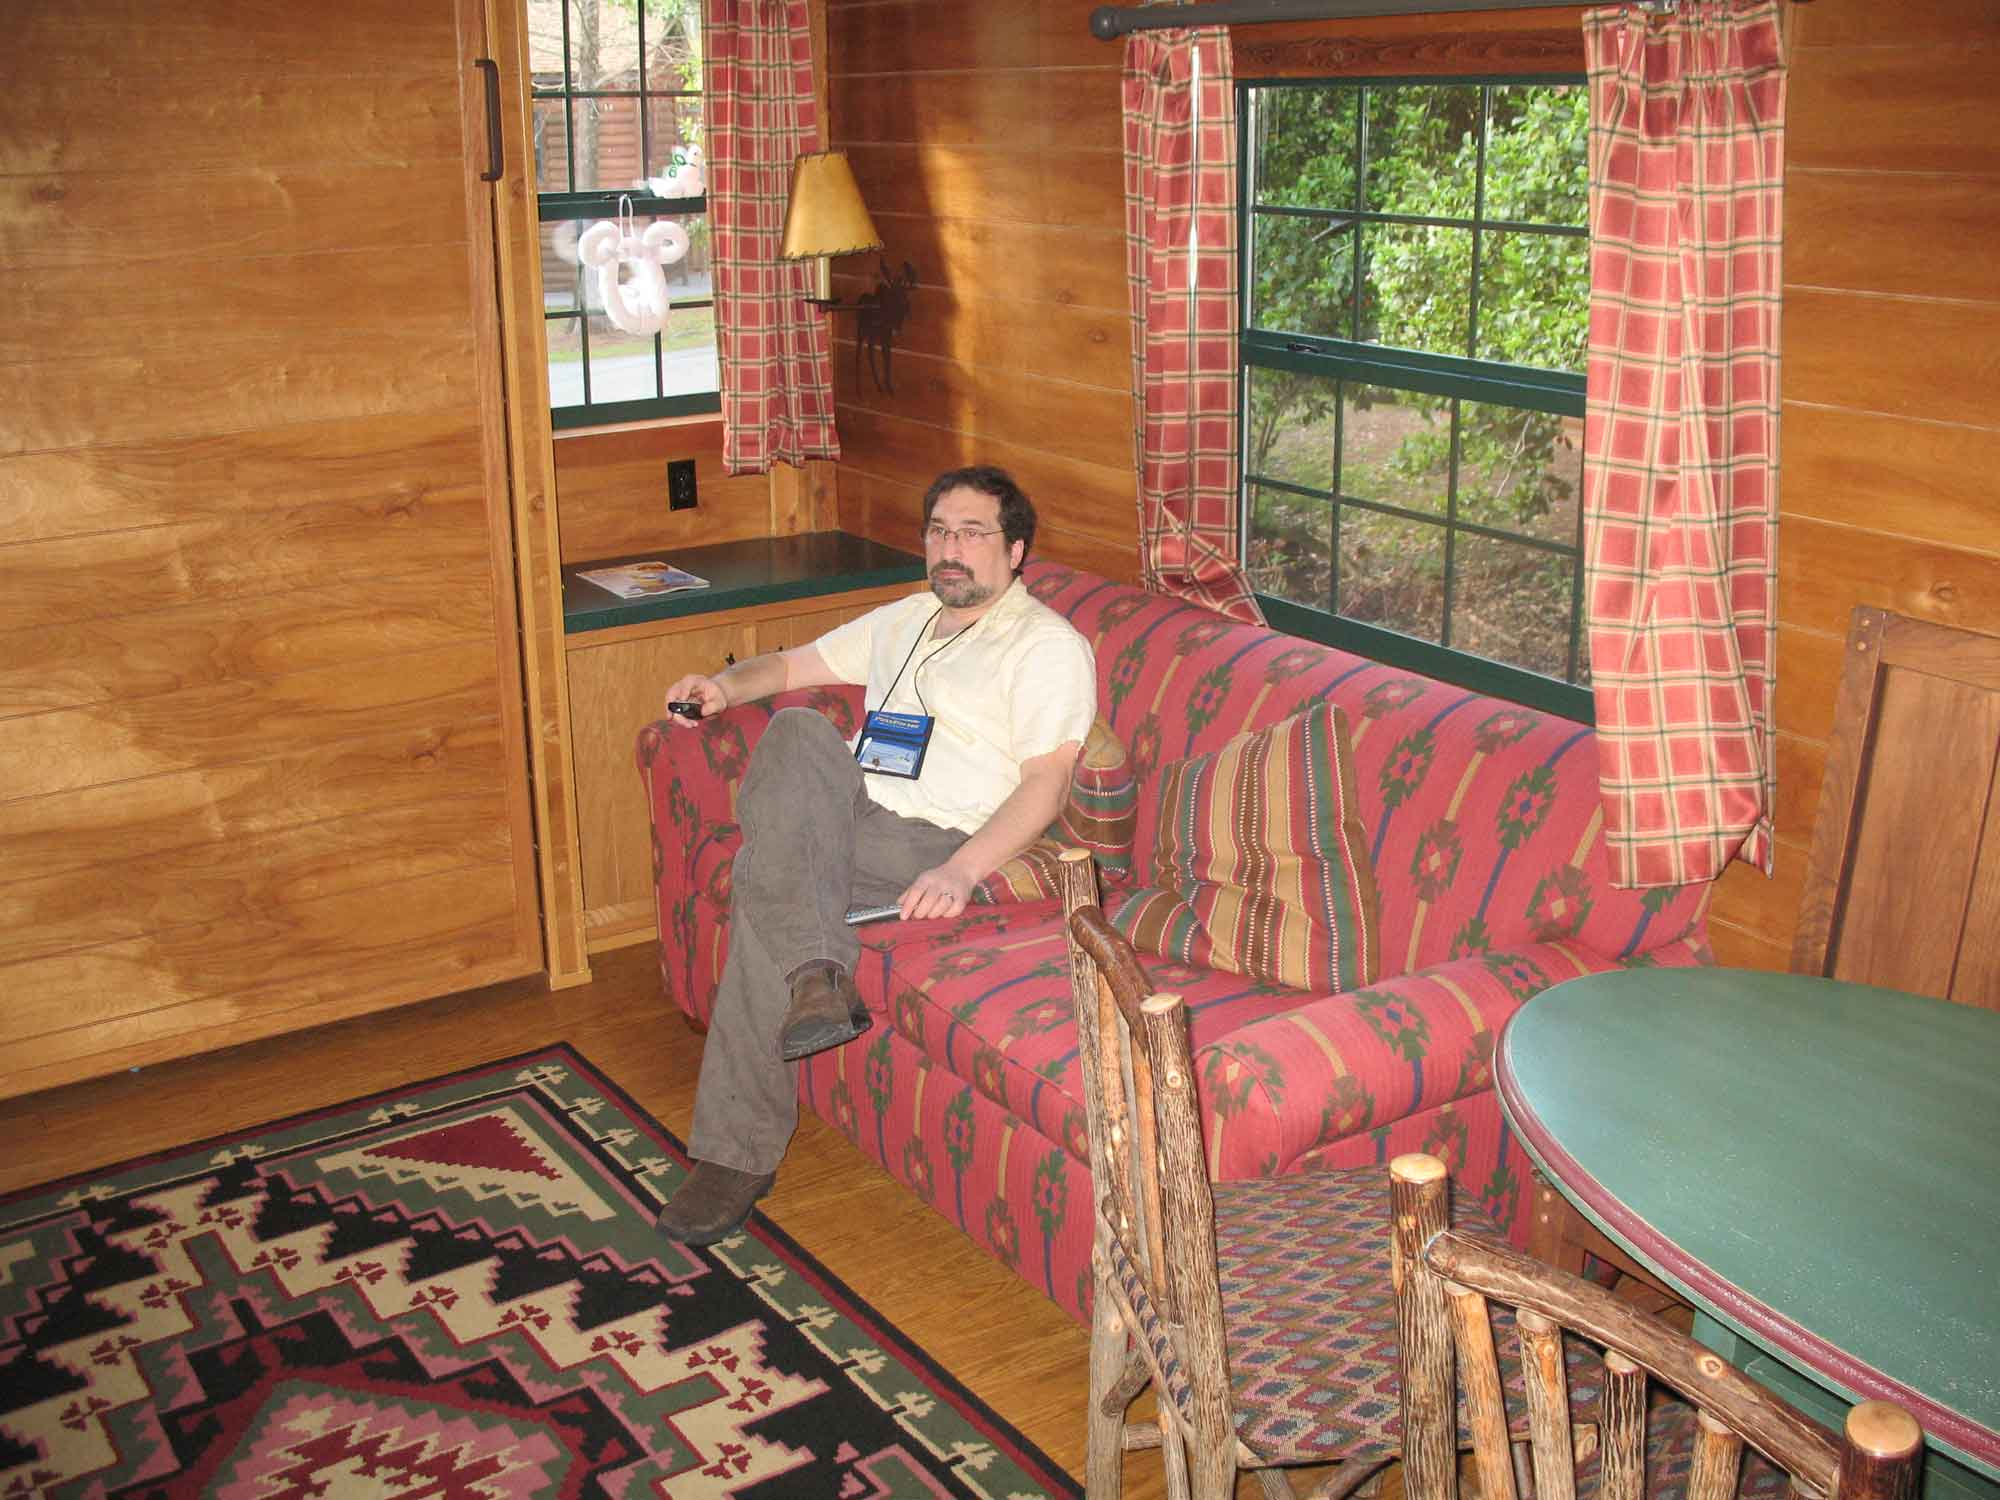 Fort Wilderness Cabin - watching TV